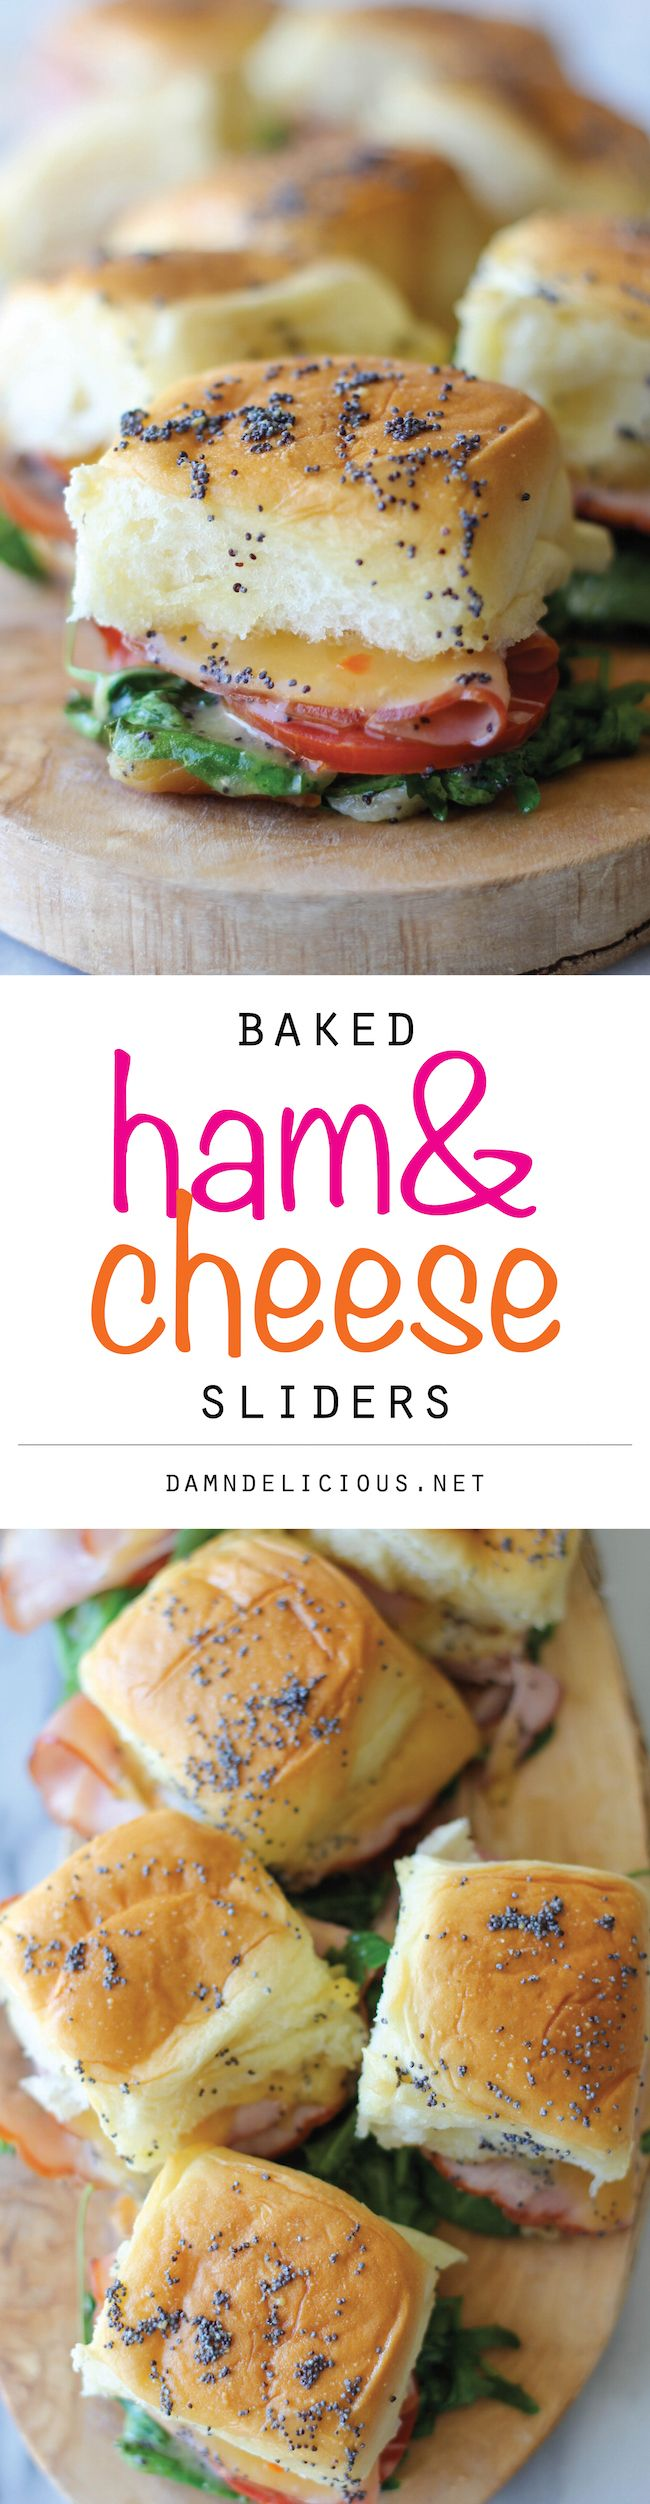 Baked Ham and Cheese Sliders - These sweet Hawaiian bread sliders are popped in the oven until they're completely buttery and oozing with melted cheese!